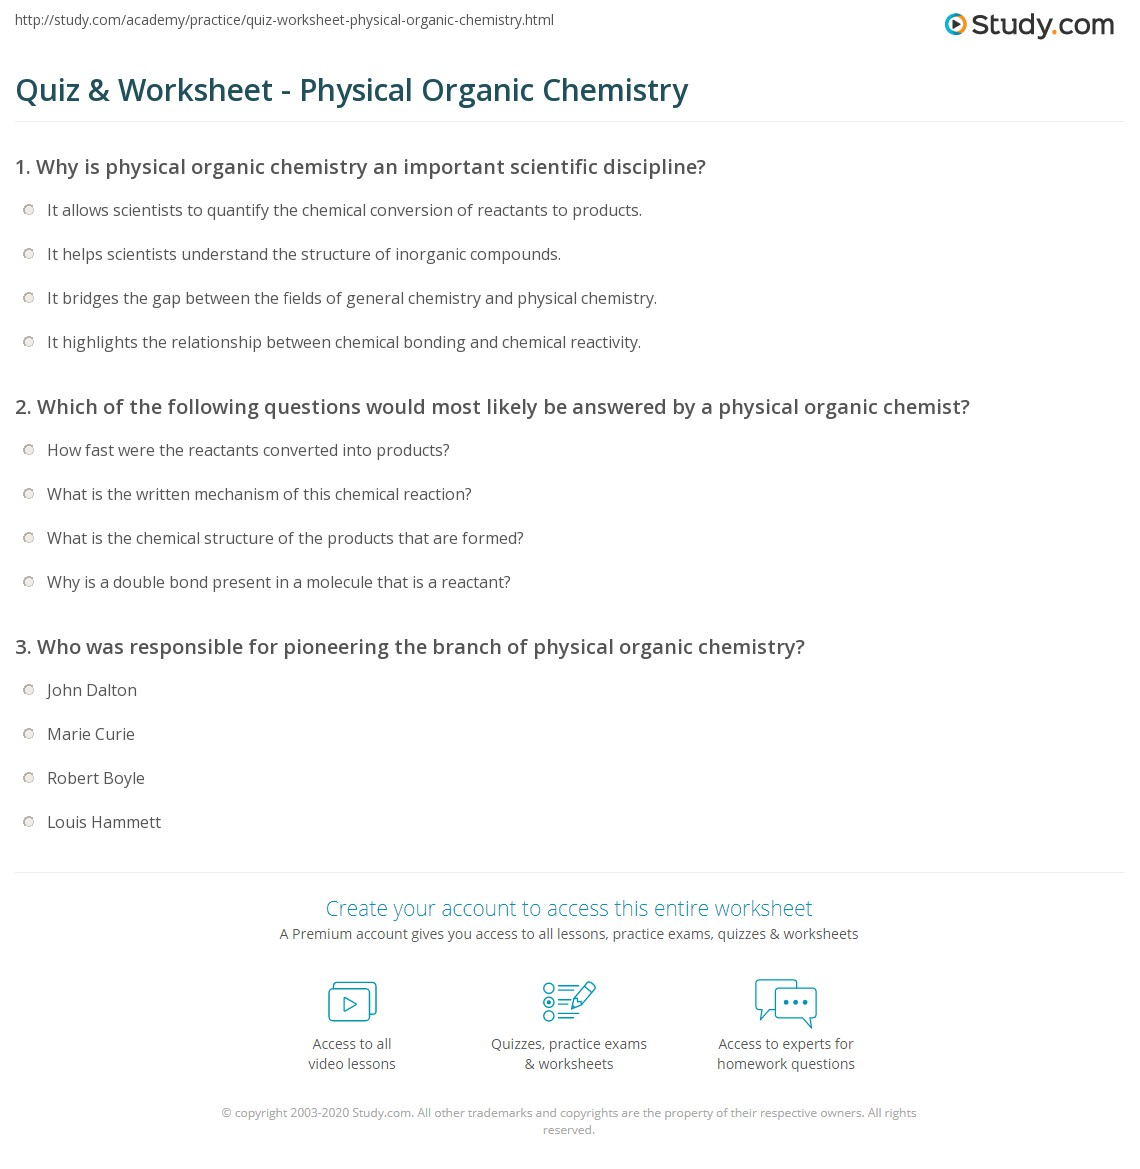 Quiz & Worksheet - Physical Organic Chemistry | Study com